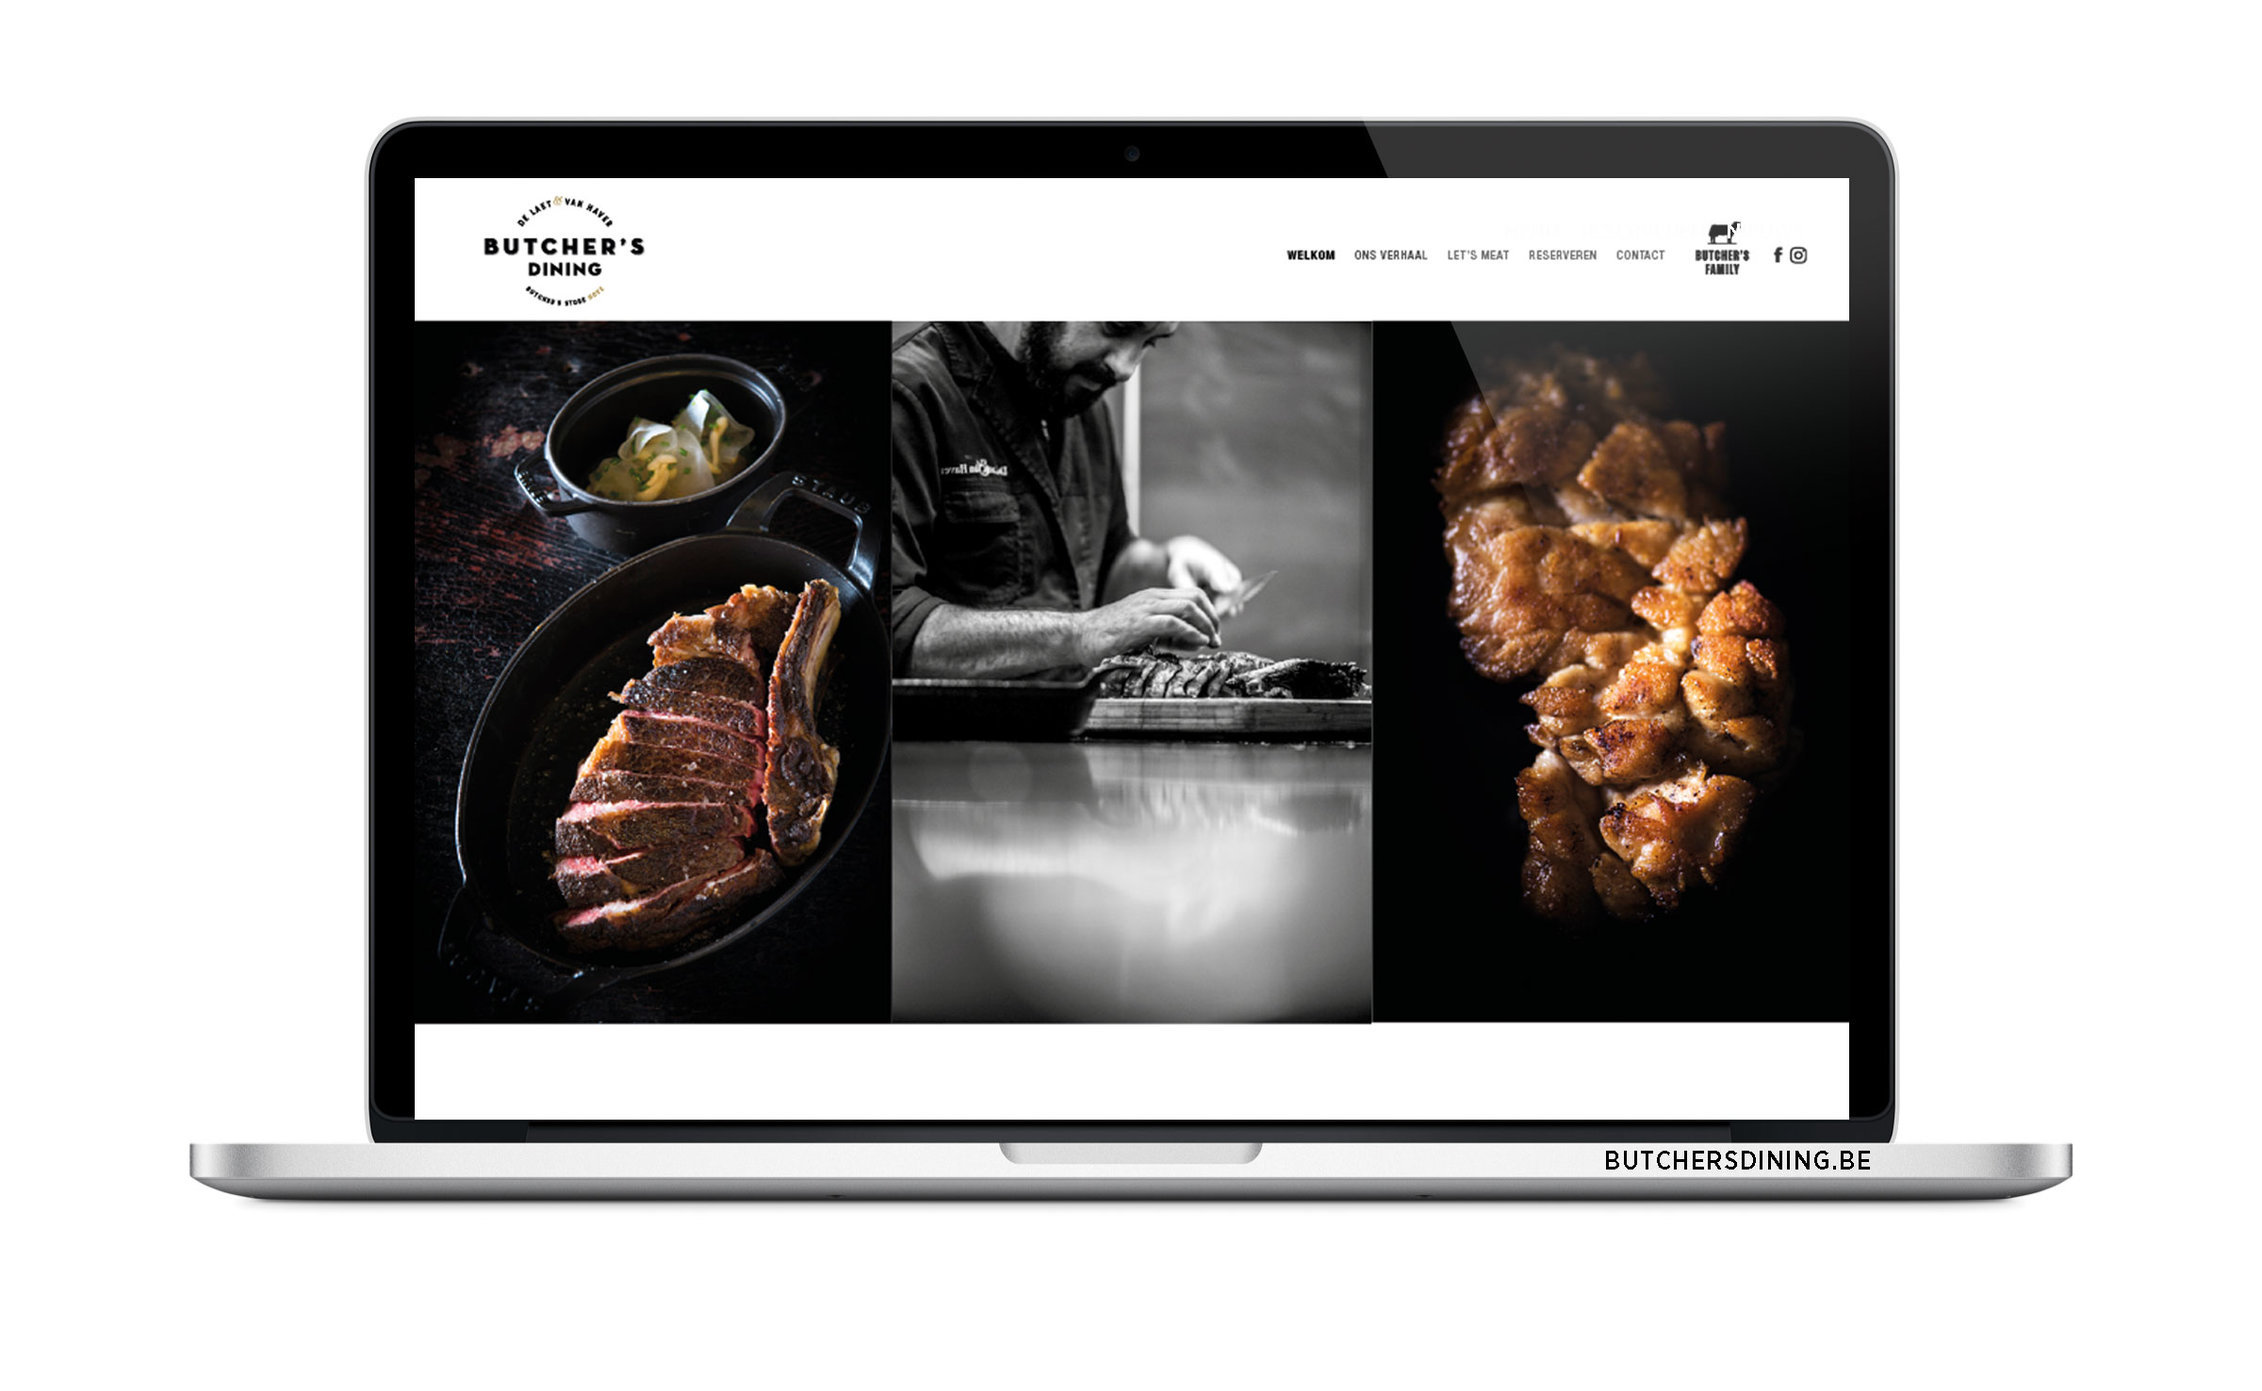 BUTCHER'S DINING - website ism Kaplus